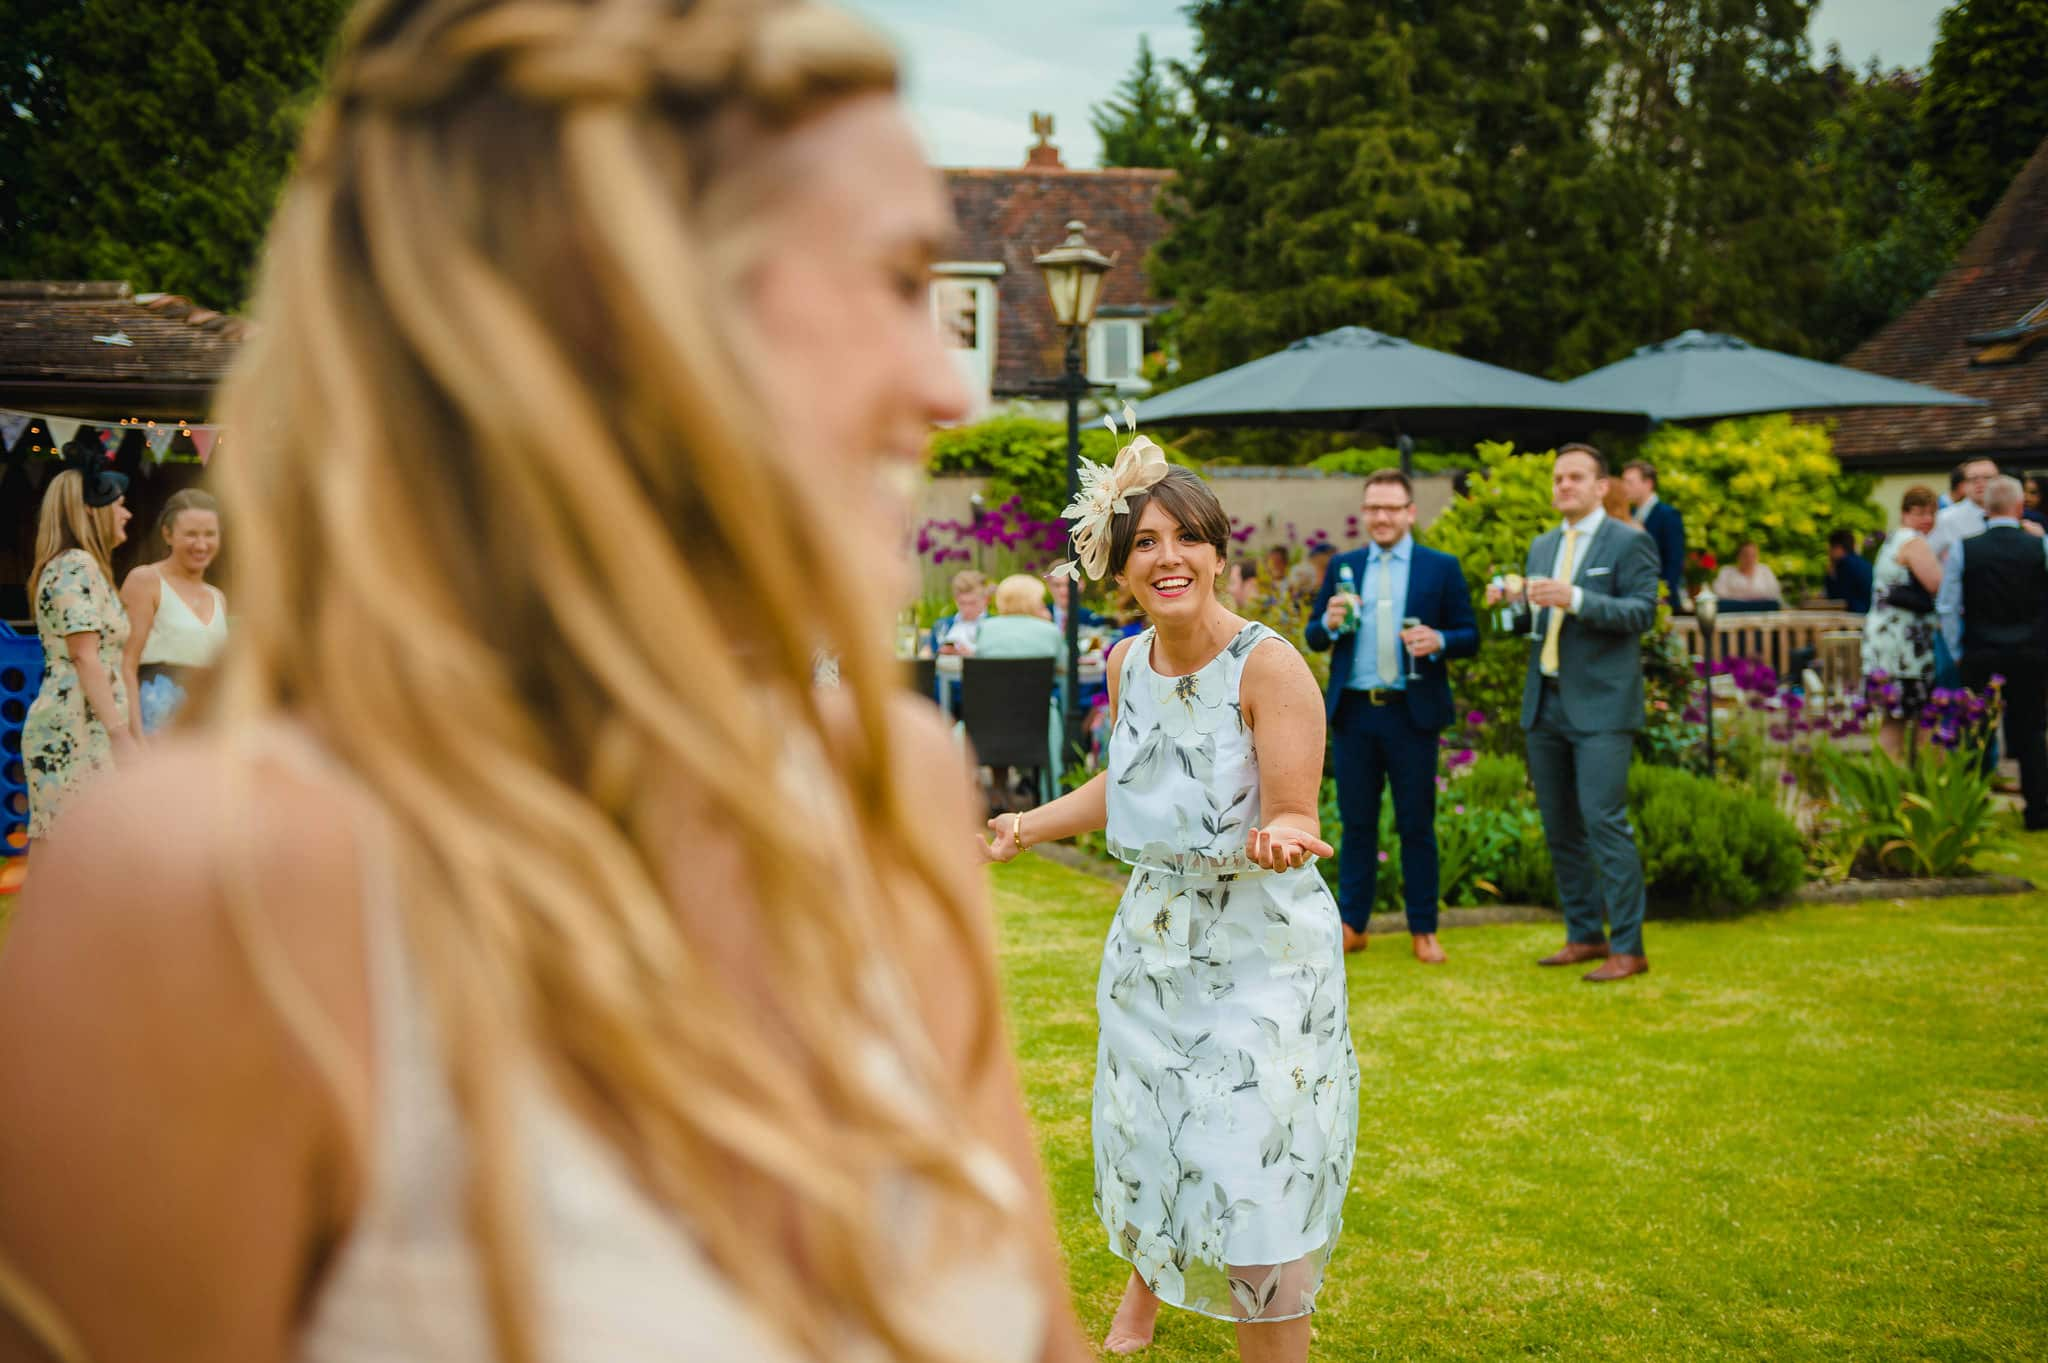 Wedding at Redhouse Barn in Stoke Prior, Worcestershire 183